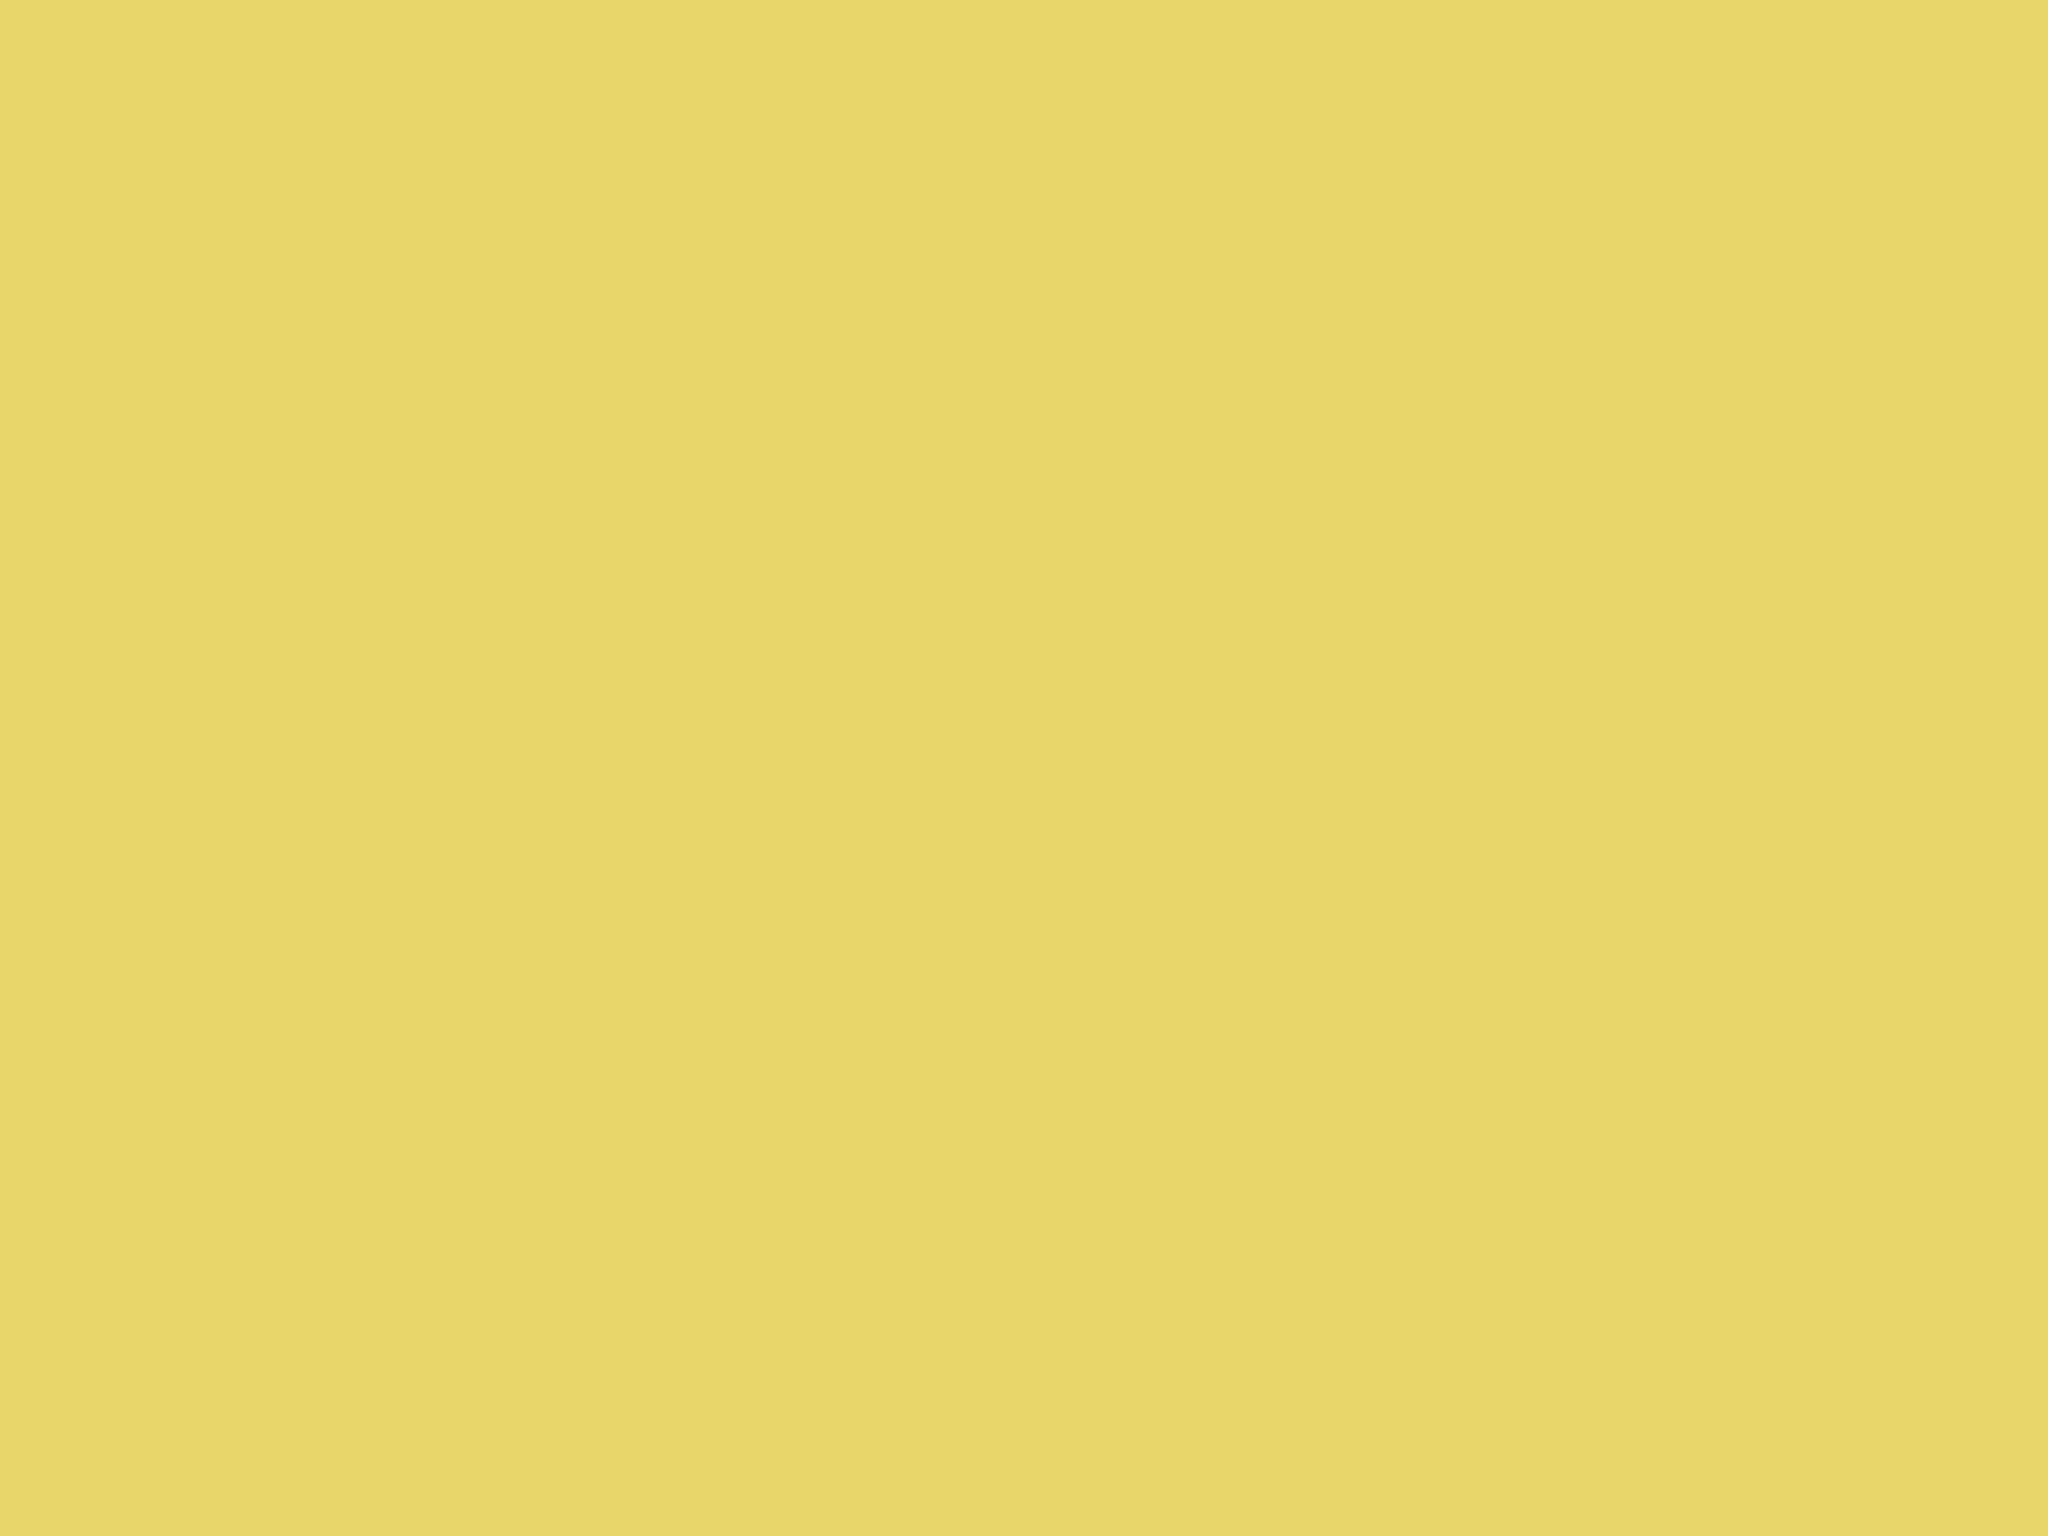 2048x1536 Arylide Yellow Solid Color Background